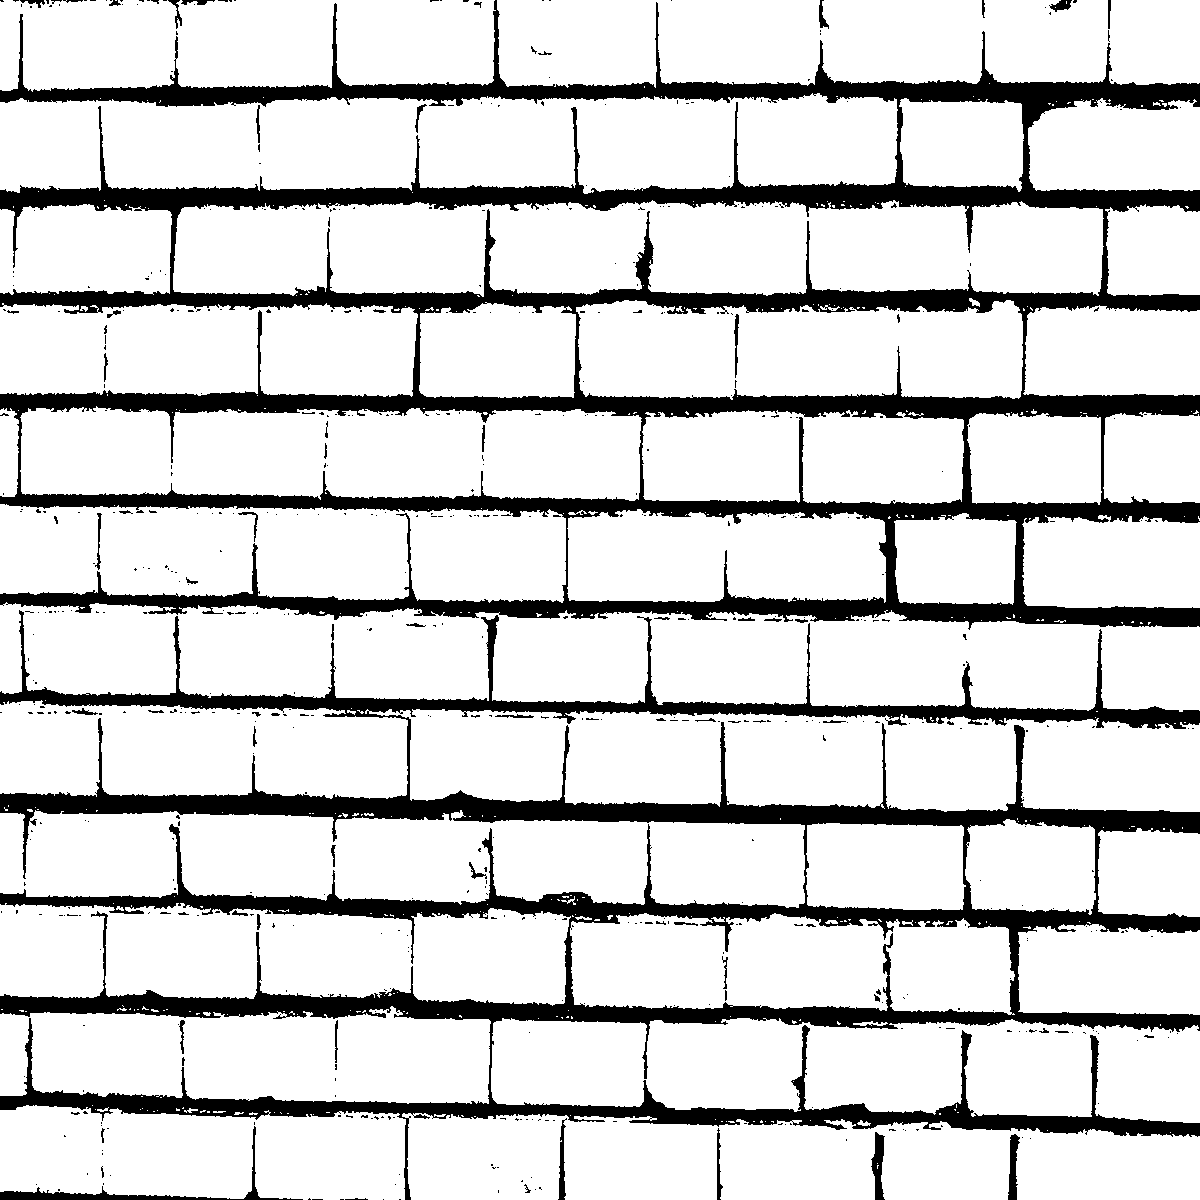 Brick Wall In Black And White Textures